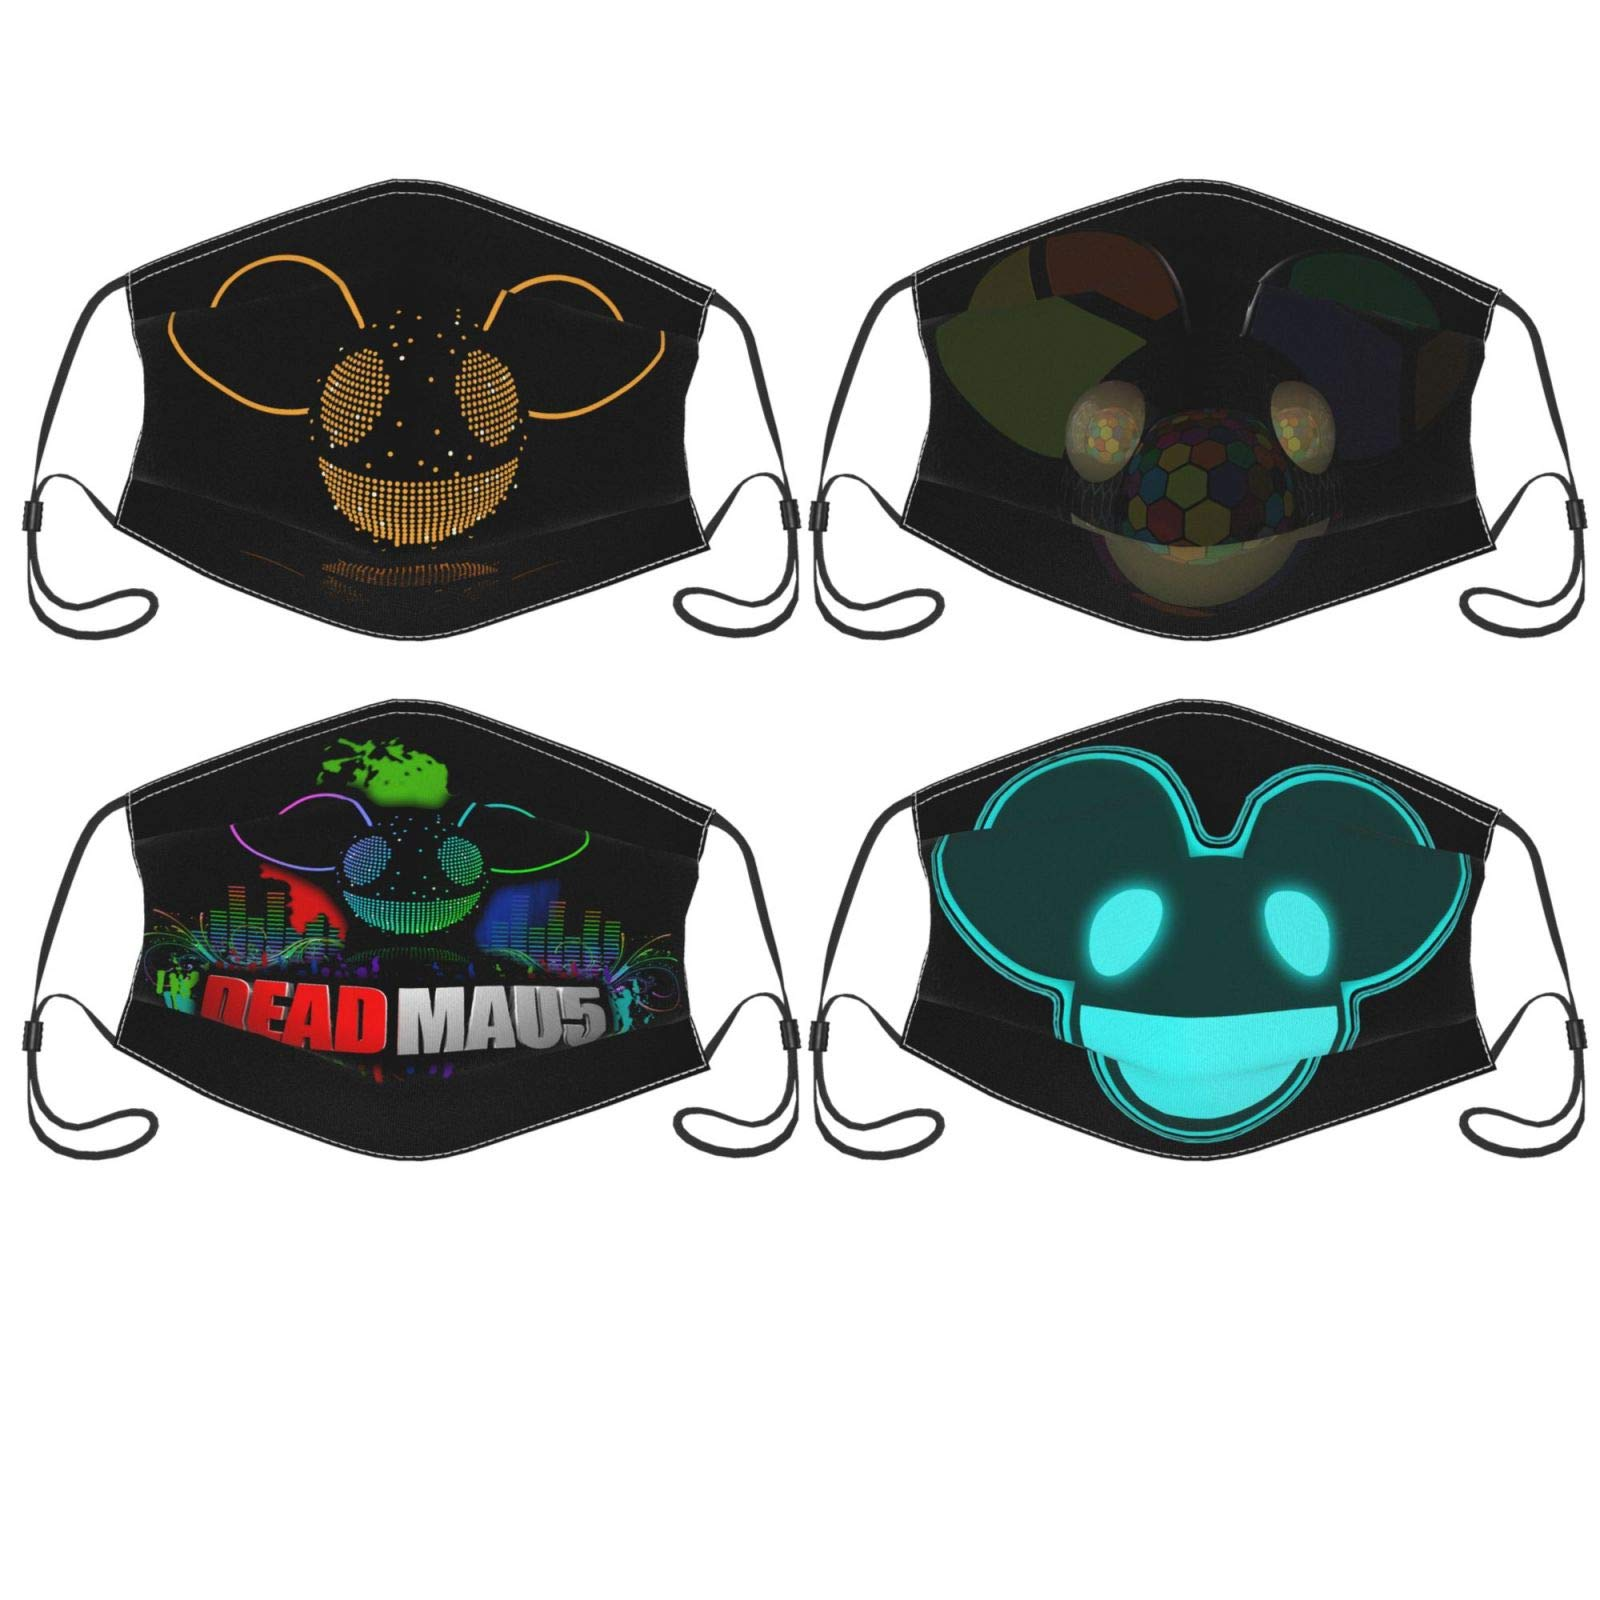 Deadmau5 Filtered Balaclava Masks, Washable And Reusable Masks For Men And Women (4 Pieces)